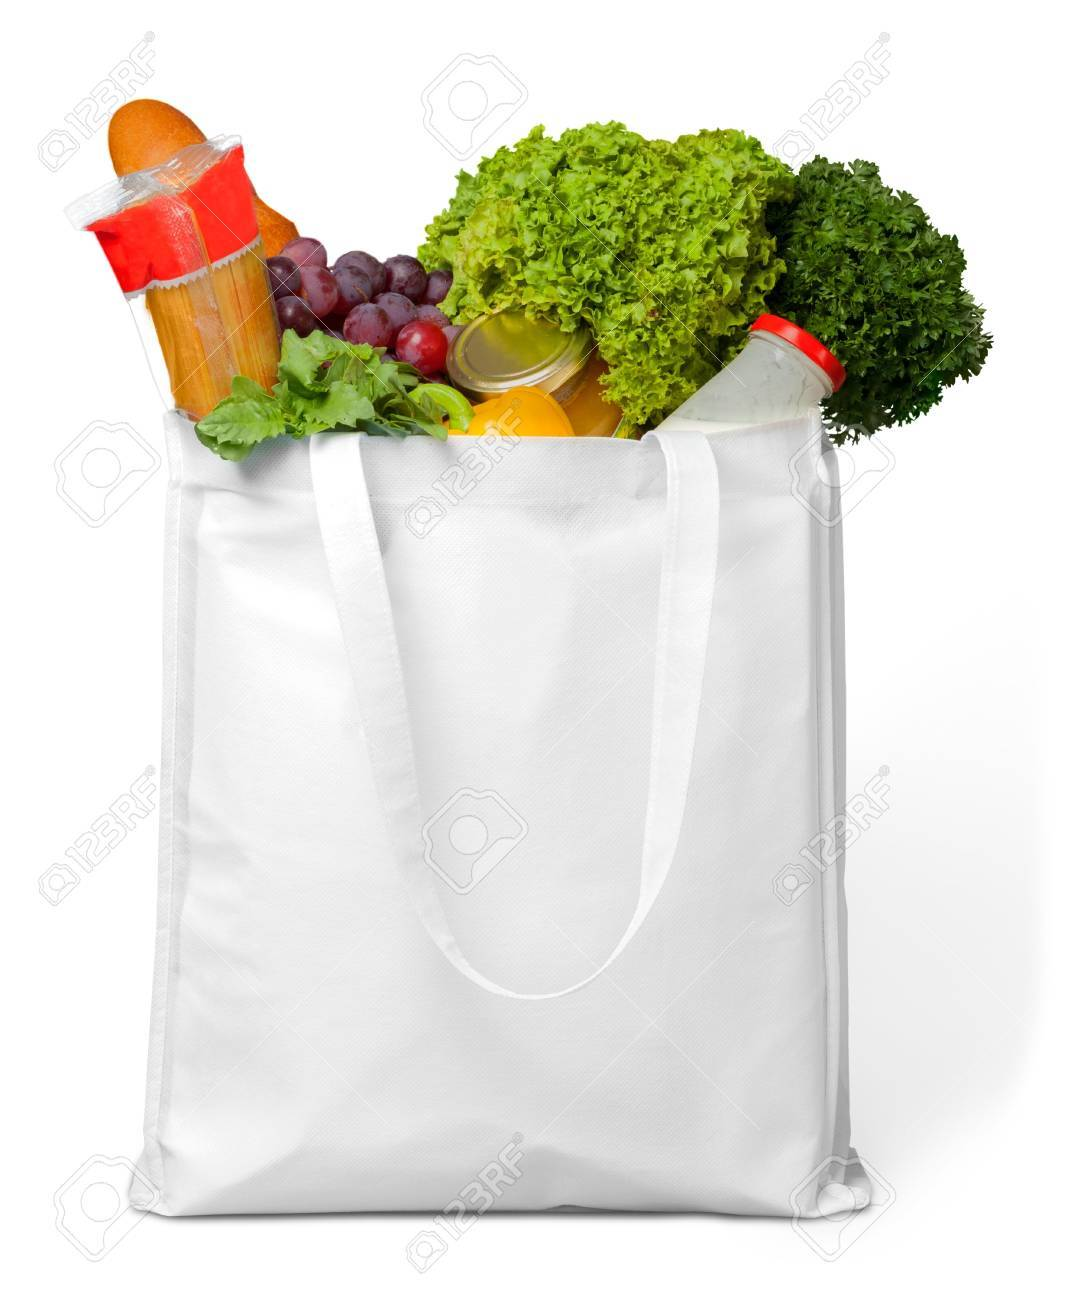 Bag. Stock Photo - 48860710